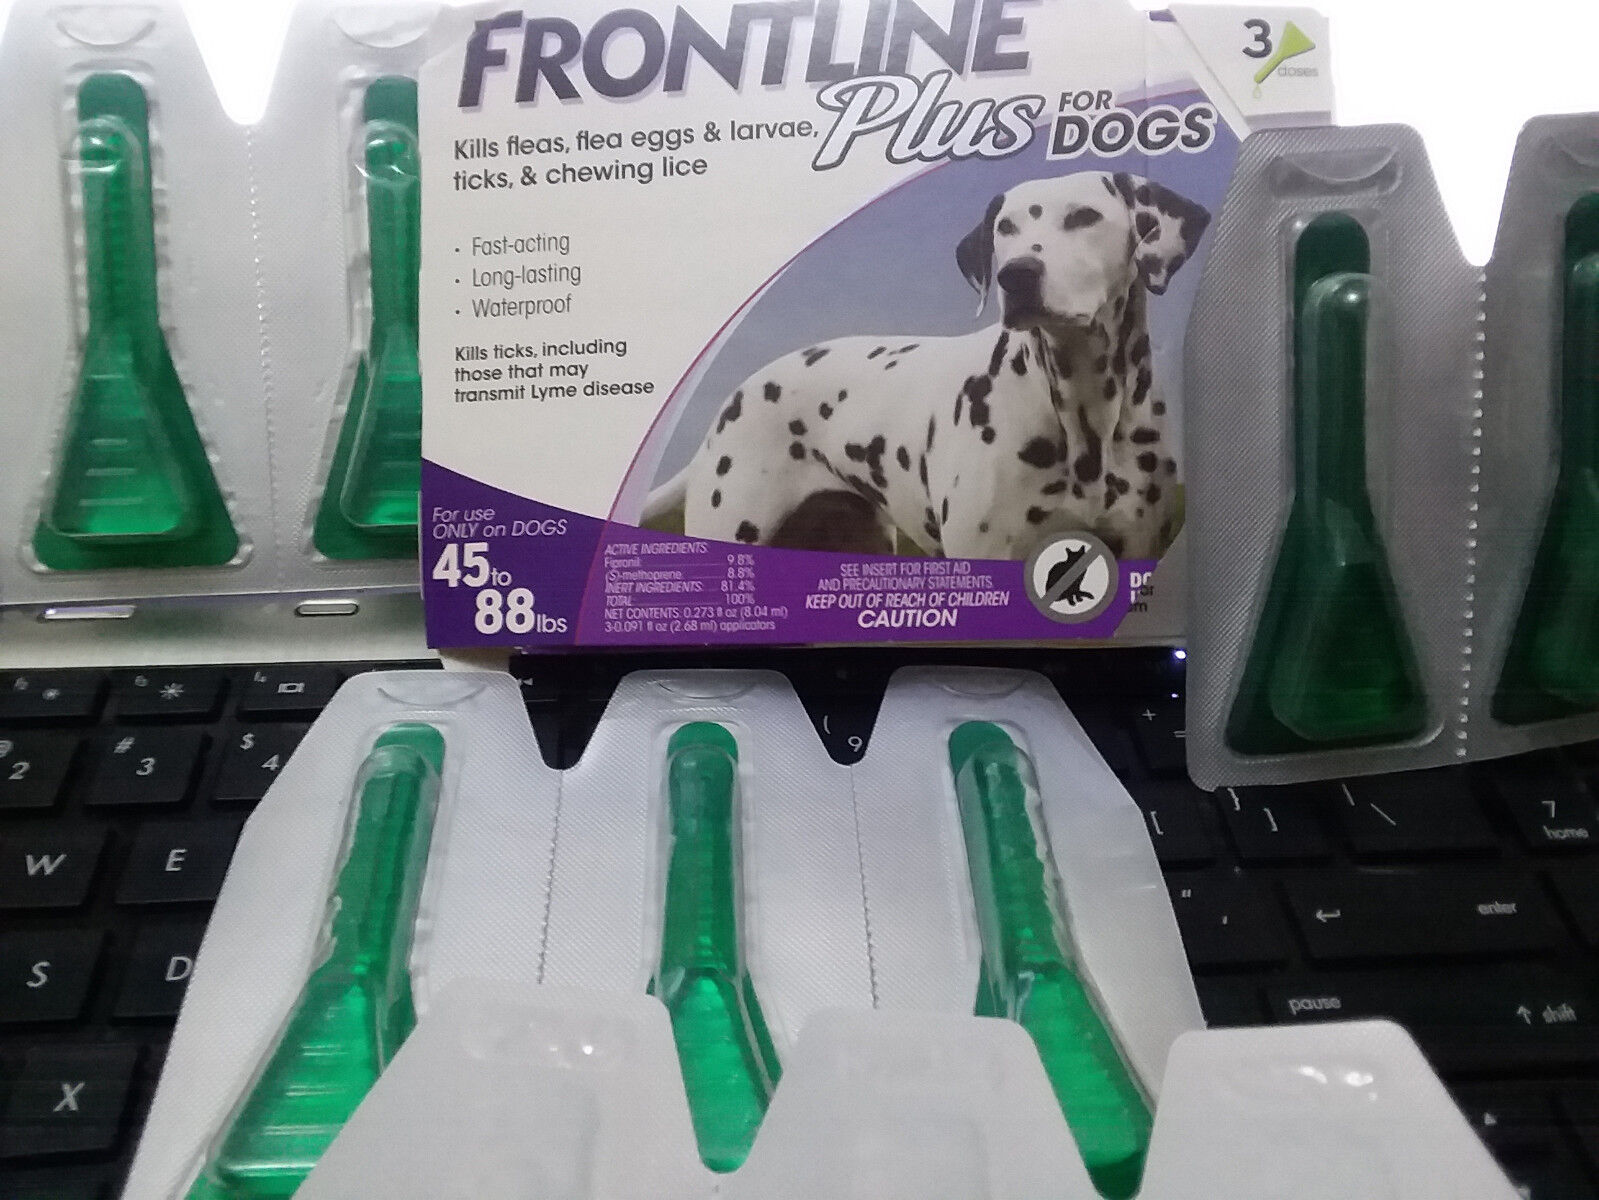 Купить FRONTLINE Plus - FRONTLINE Plus For Dogs 45 - 88 lbs lb 3 x 2 doses each = 6 month supply